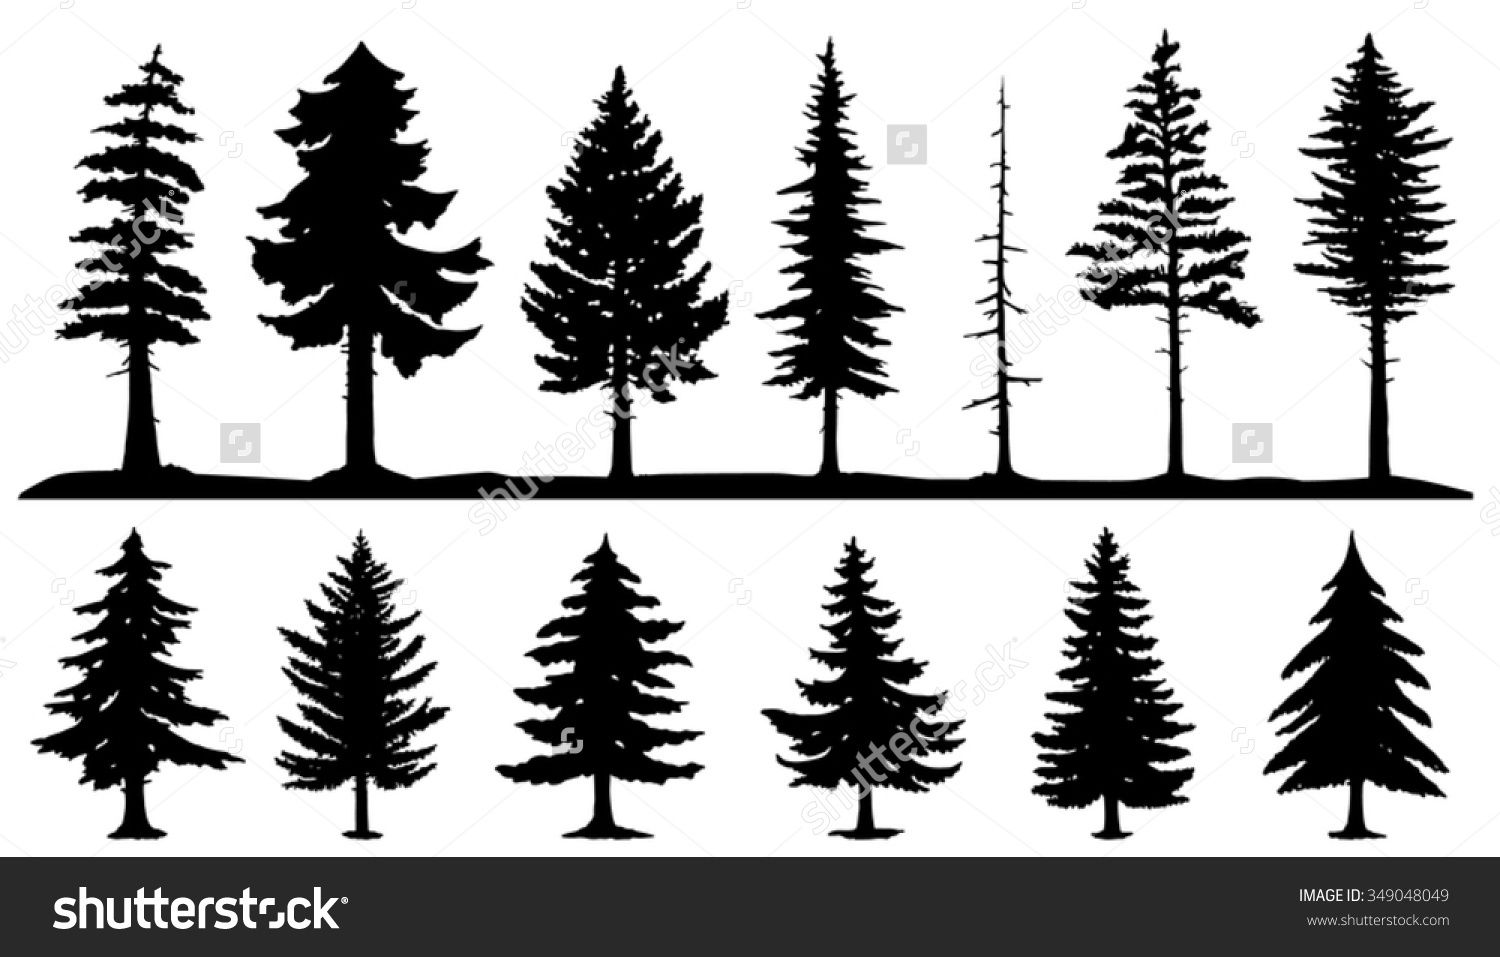 Forest Silhouette Tattoo Conifer Tree Silhouettes On The